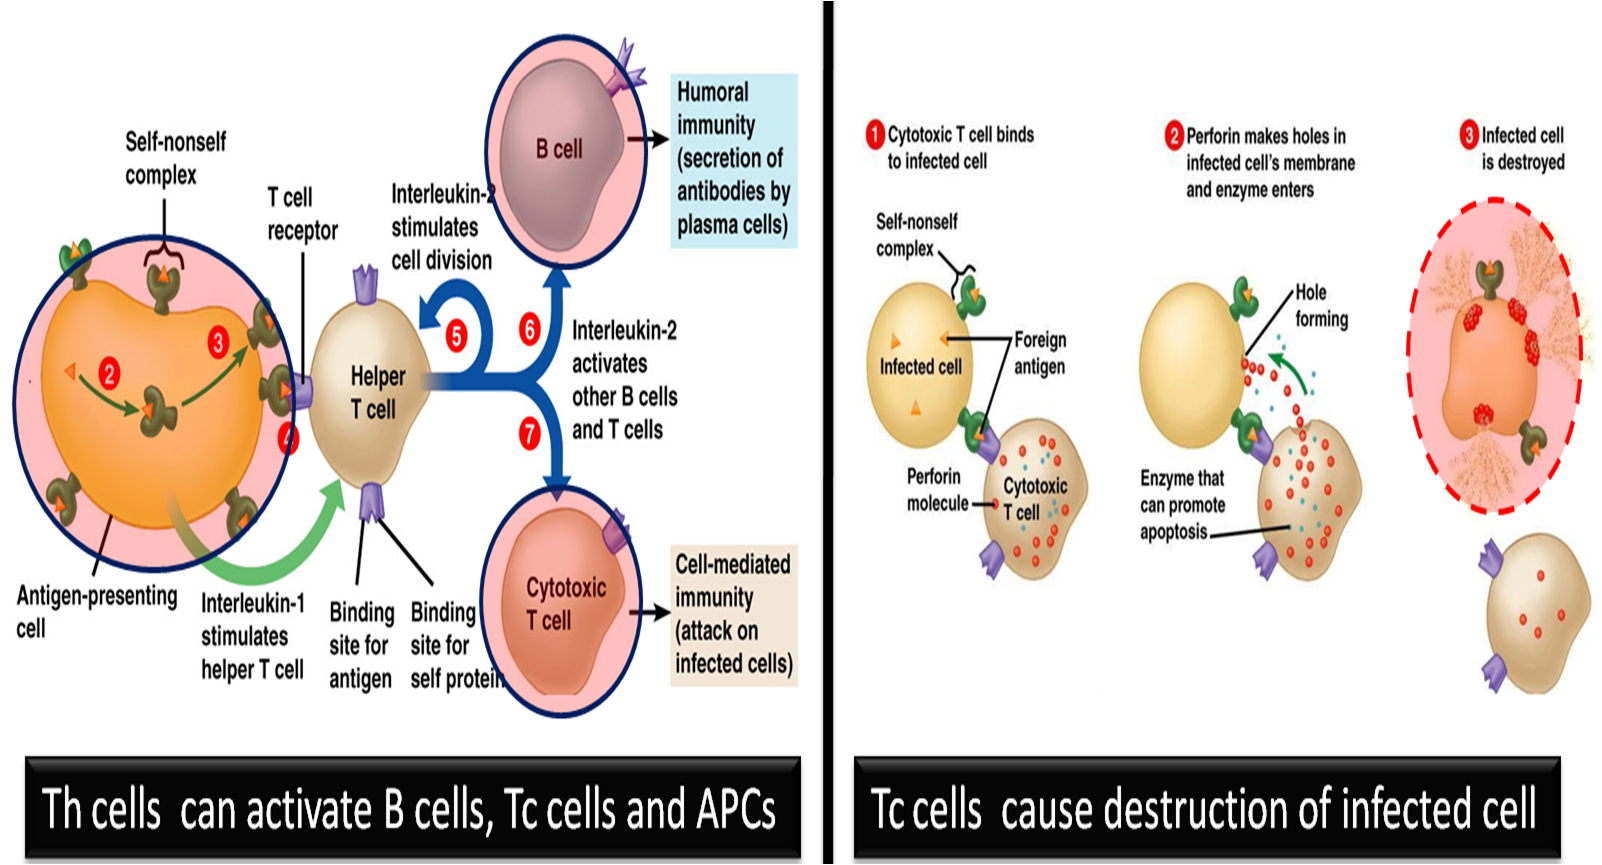 Th cells and Tc cells